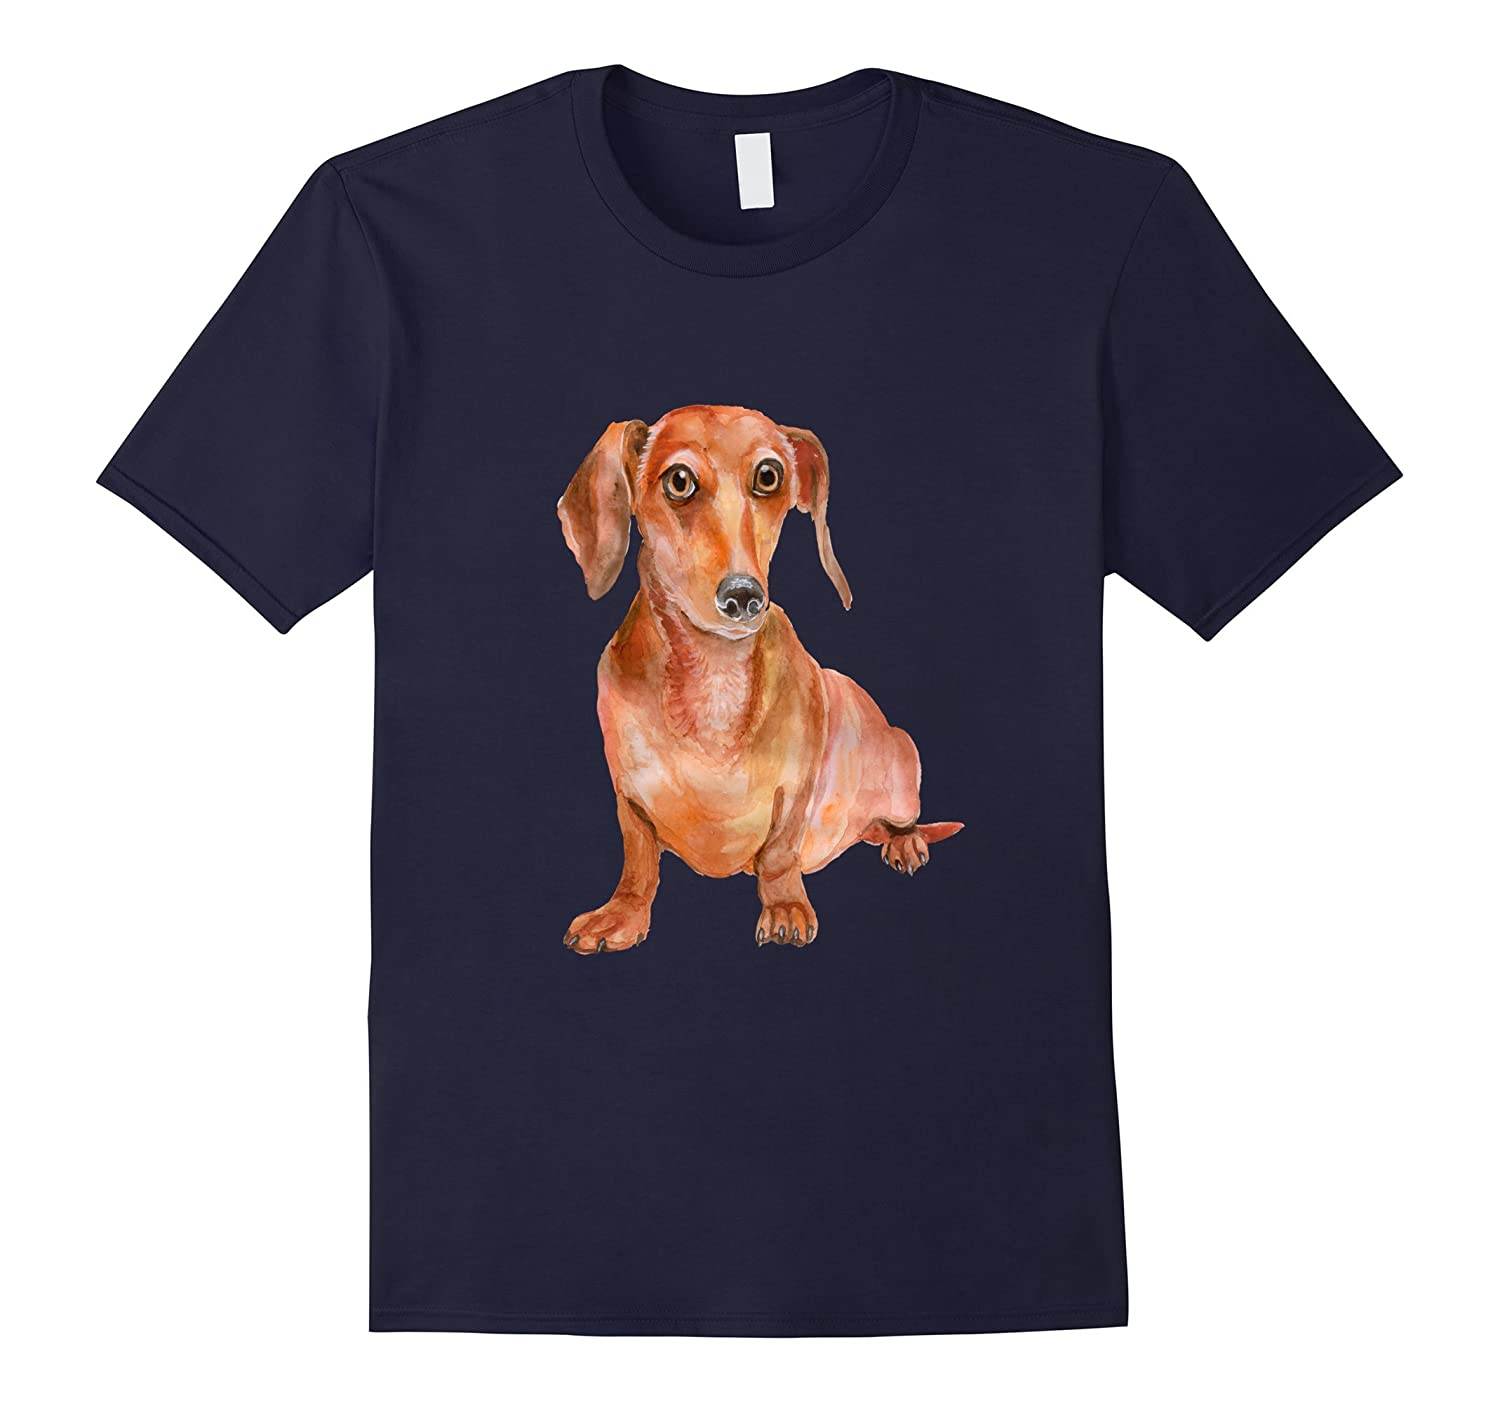 Dachshund Wiener Dog Shirt Watercolor Realistic Dogs Mom Dad-CD